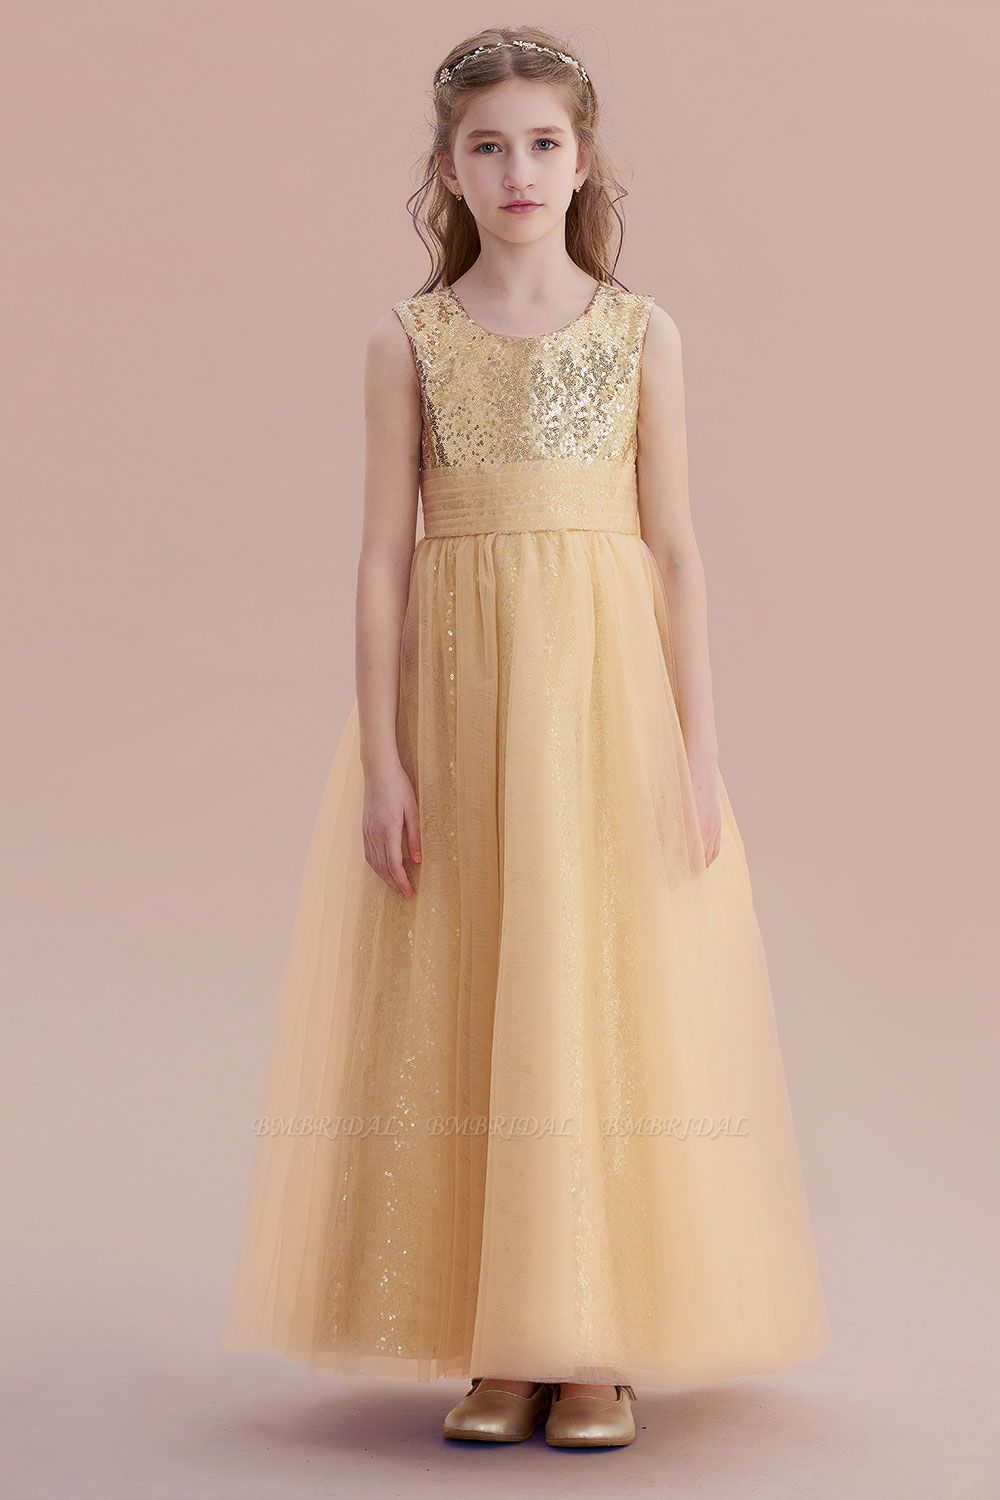 BMbridal A-Line Awesome Sequins Tulle Flower Girl Dress Online